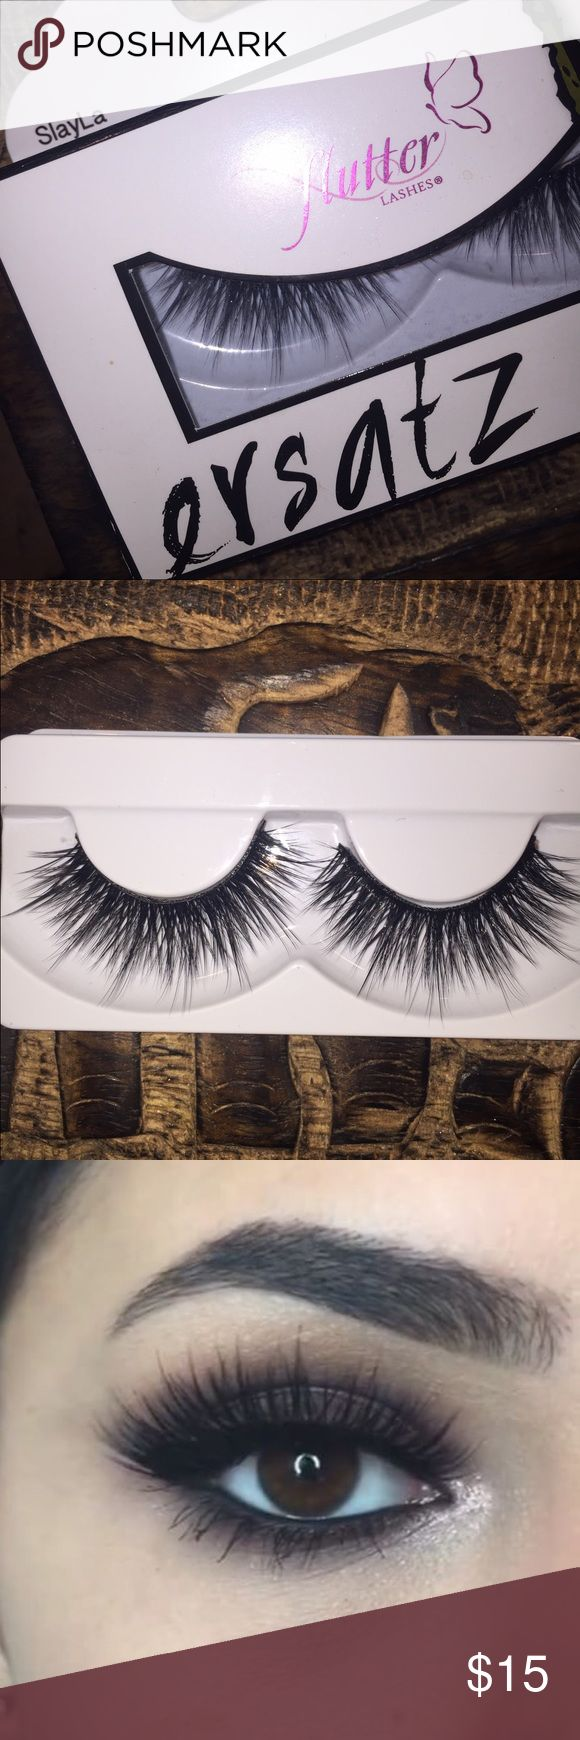 Flutter SlayLa lashes Lashes that accomplish a dramatic flare while still looking natural. I bought these for a Halloween costume but ended up not needing them, so they've never been worn. Flutter Makeup Mascara